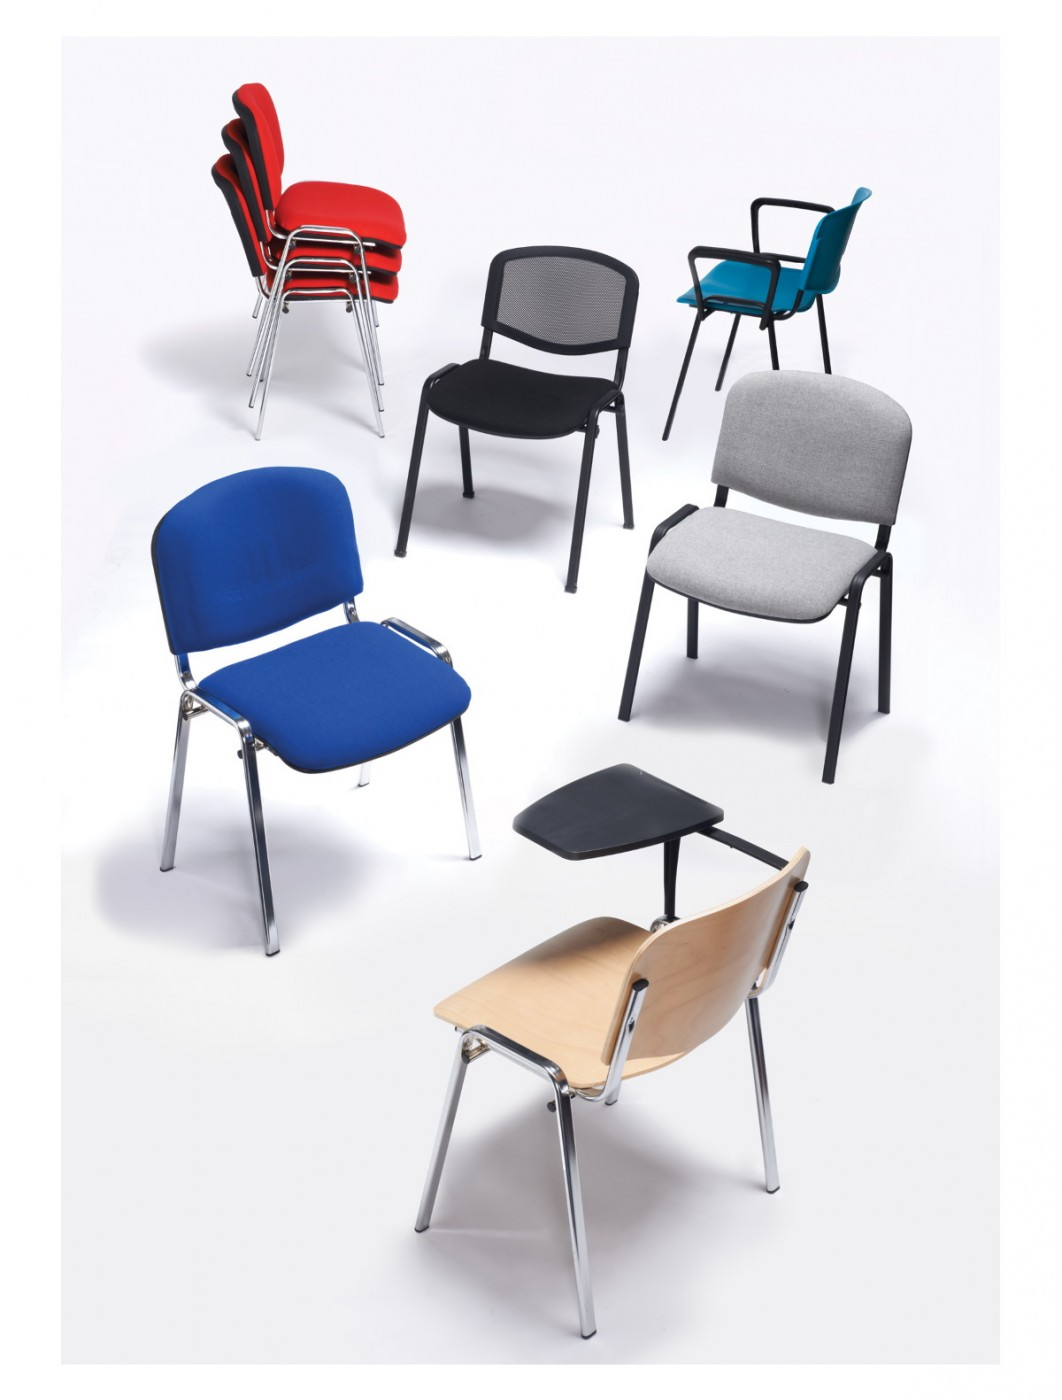 Stackable Meeting Room Seat - 4 Pack Taurus TAU40004 BOXTAU4